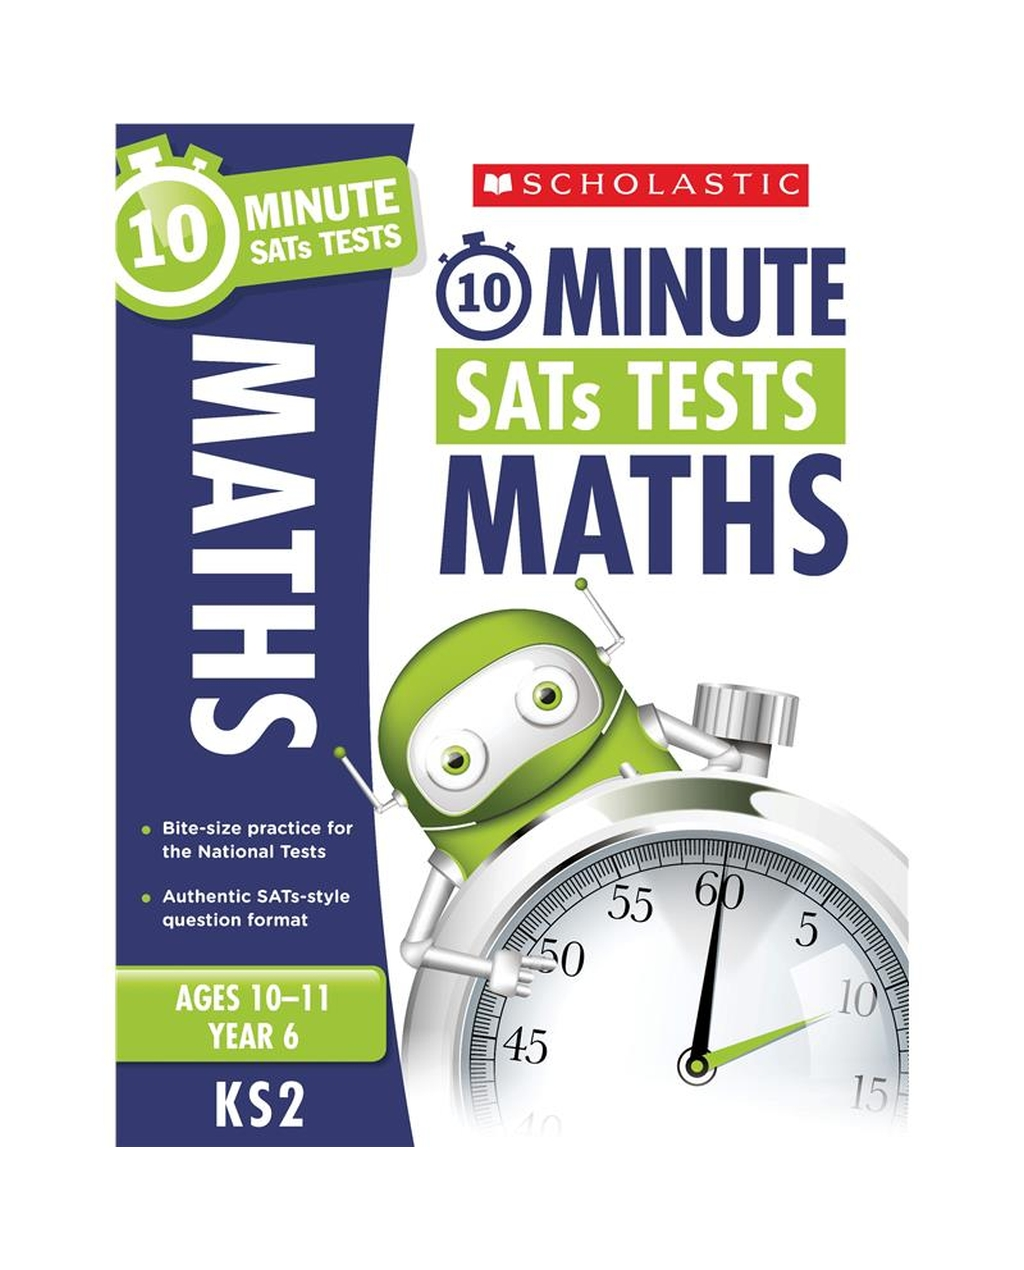 10-Minute SATs Tests: Maths - Year 6